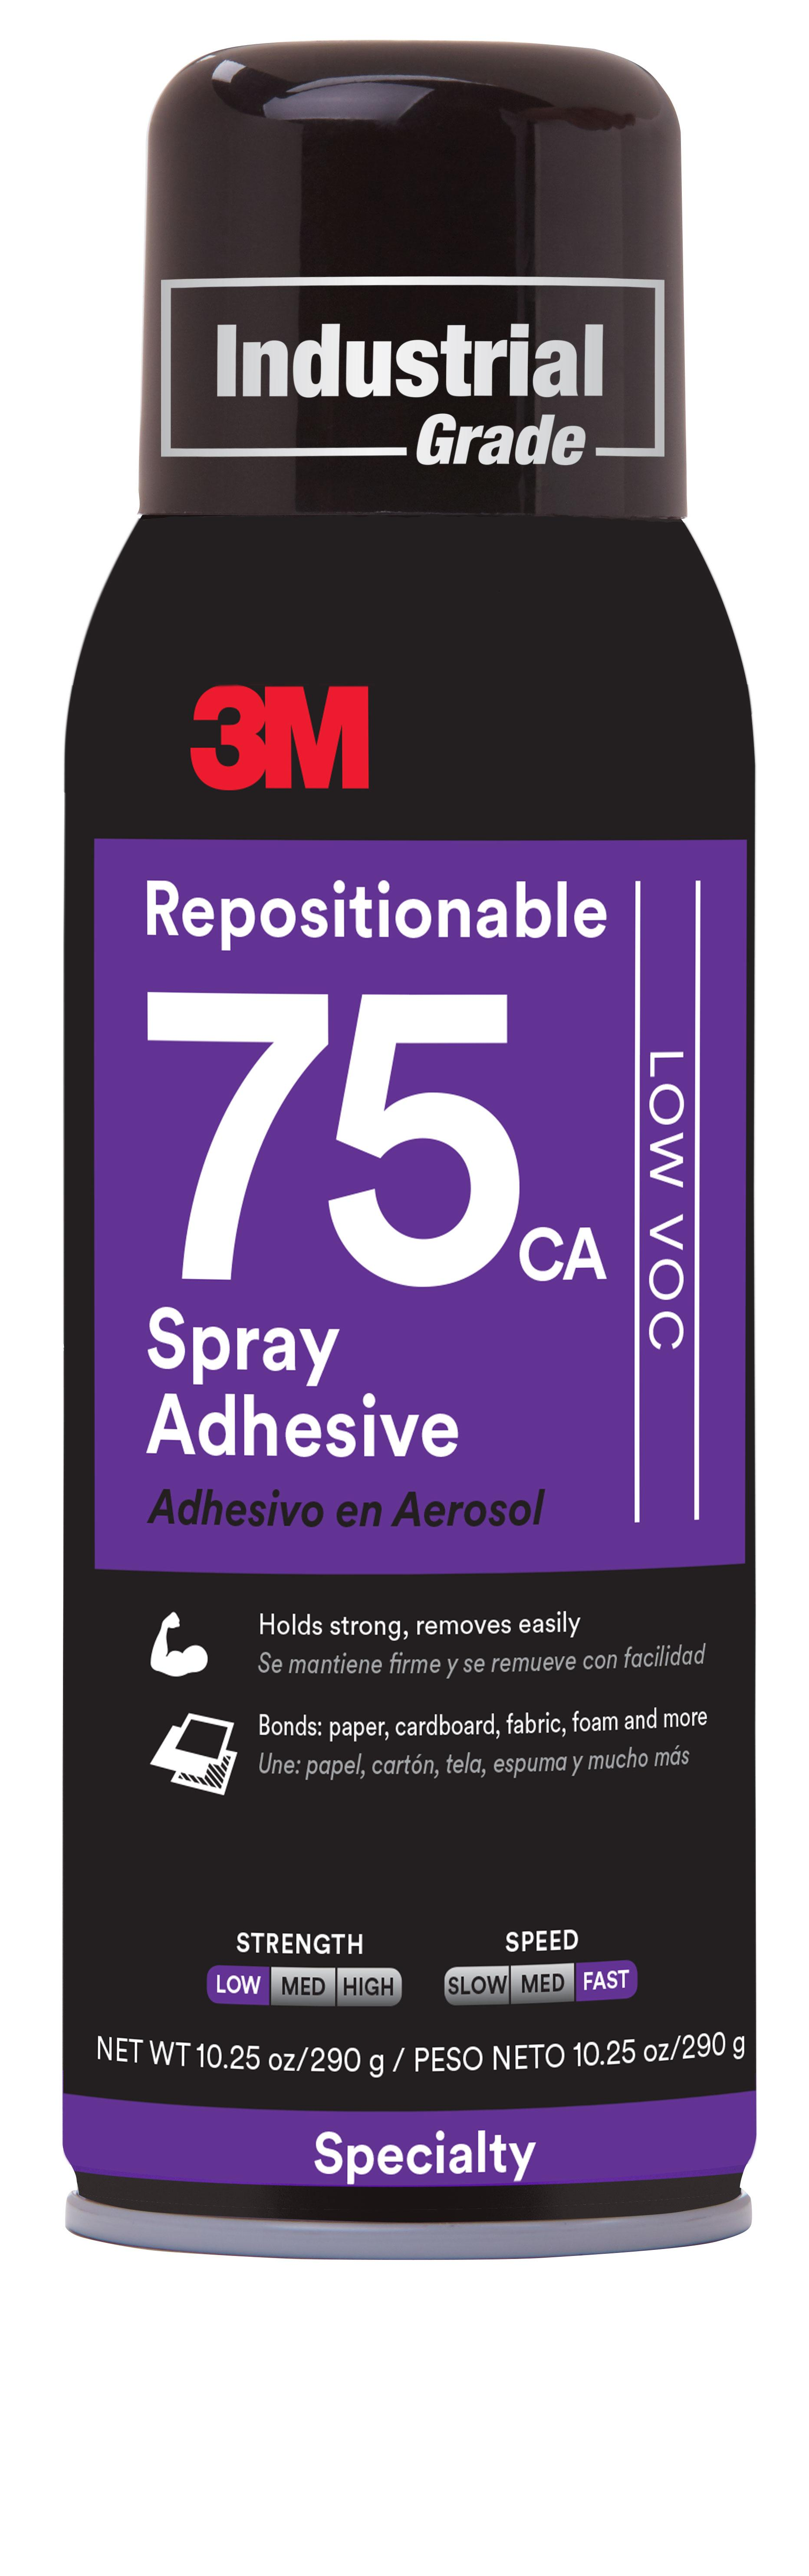 3M Repositionable Adhesive 75 276g